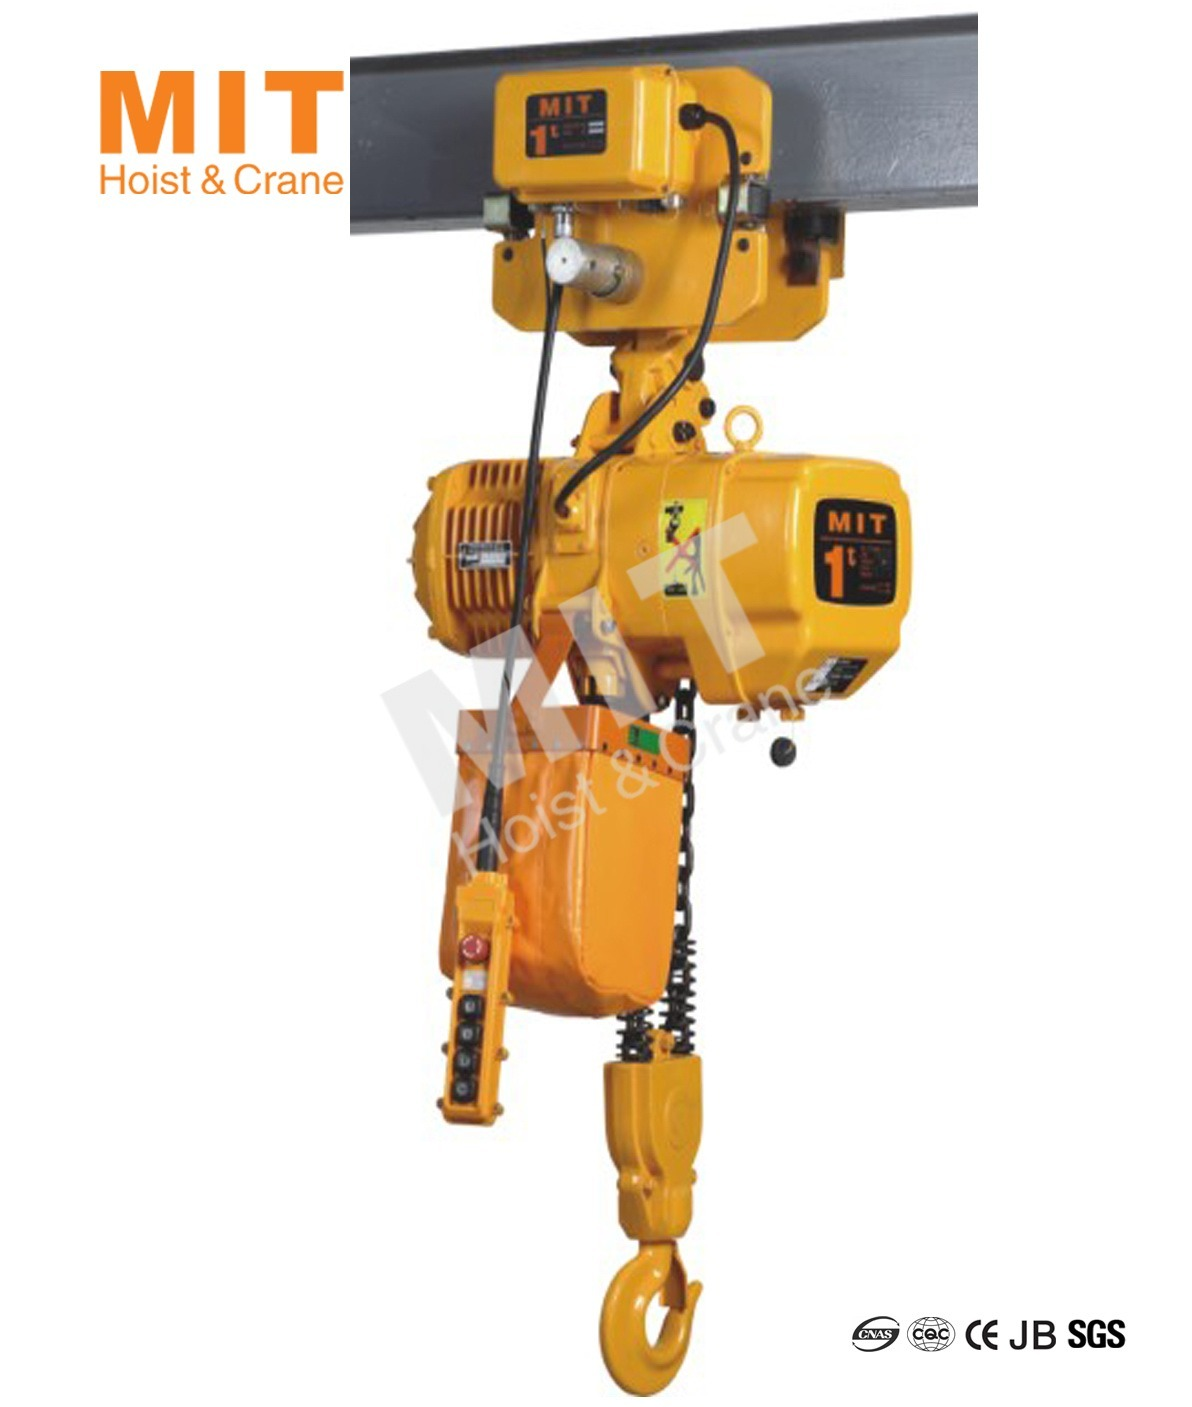 Mit electric chain hoist 1t with motorized trolley 2 falls for Motorized rotating crane hook